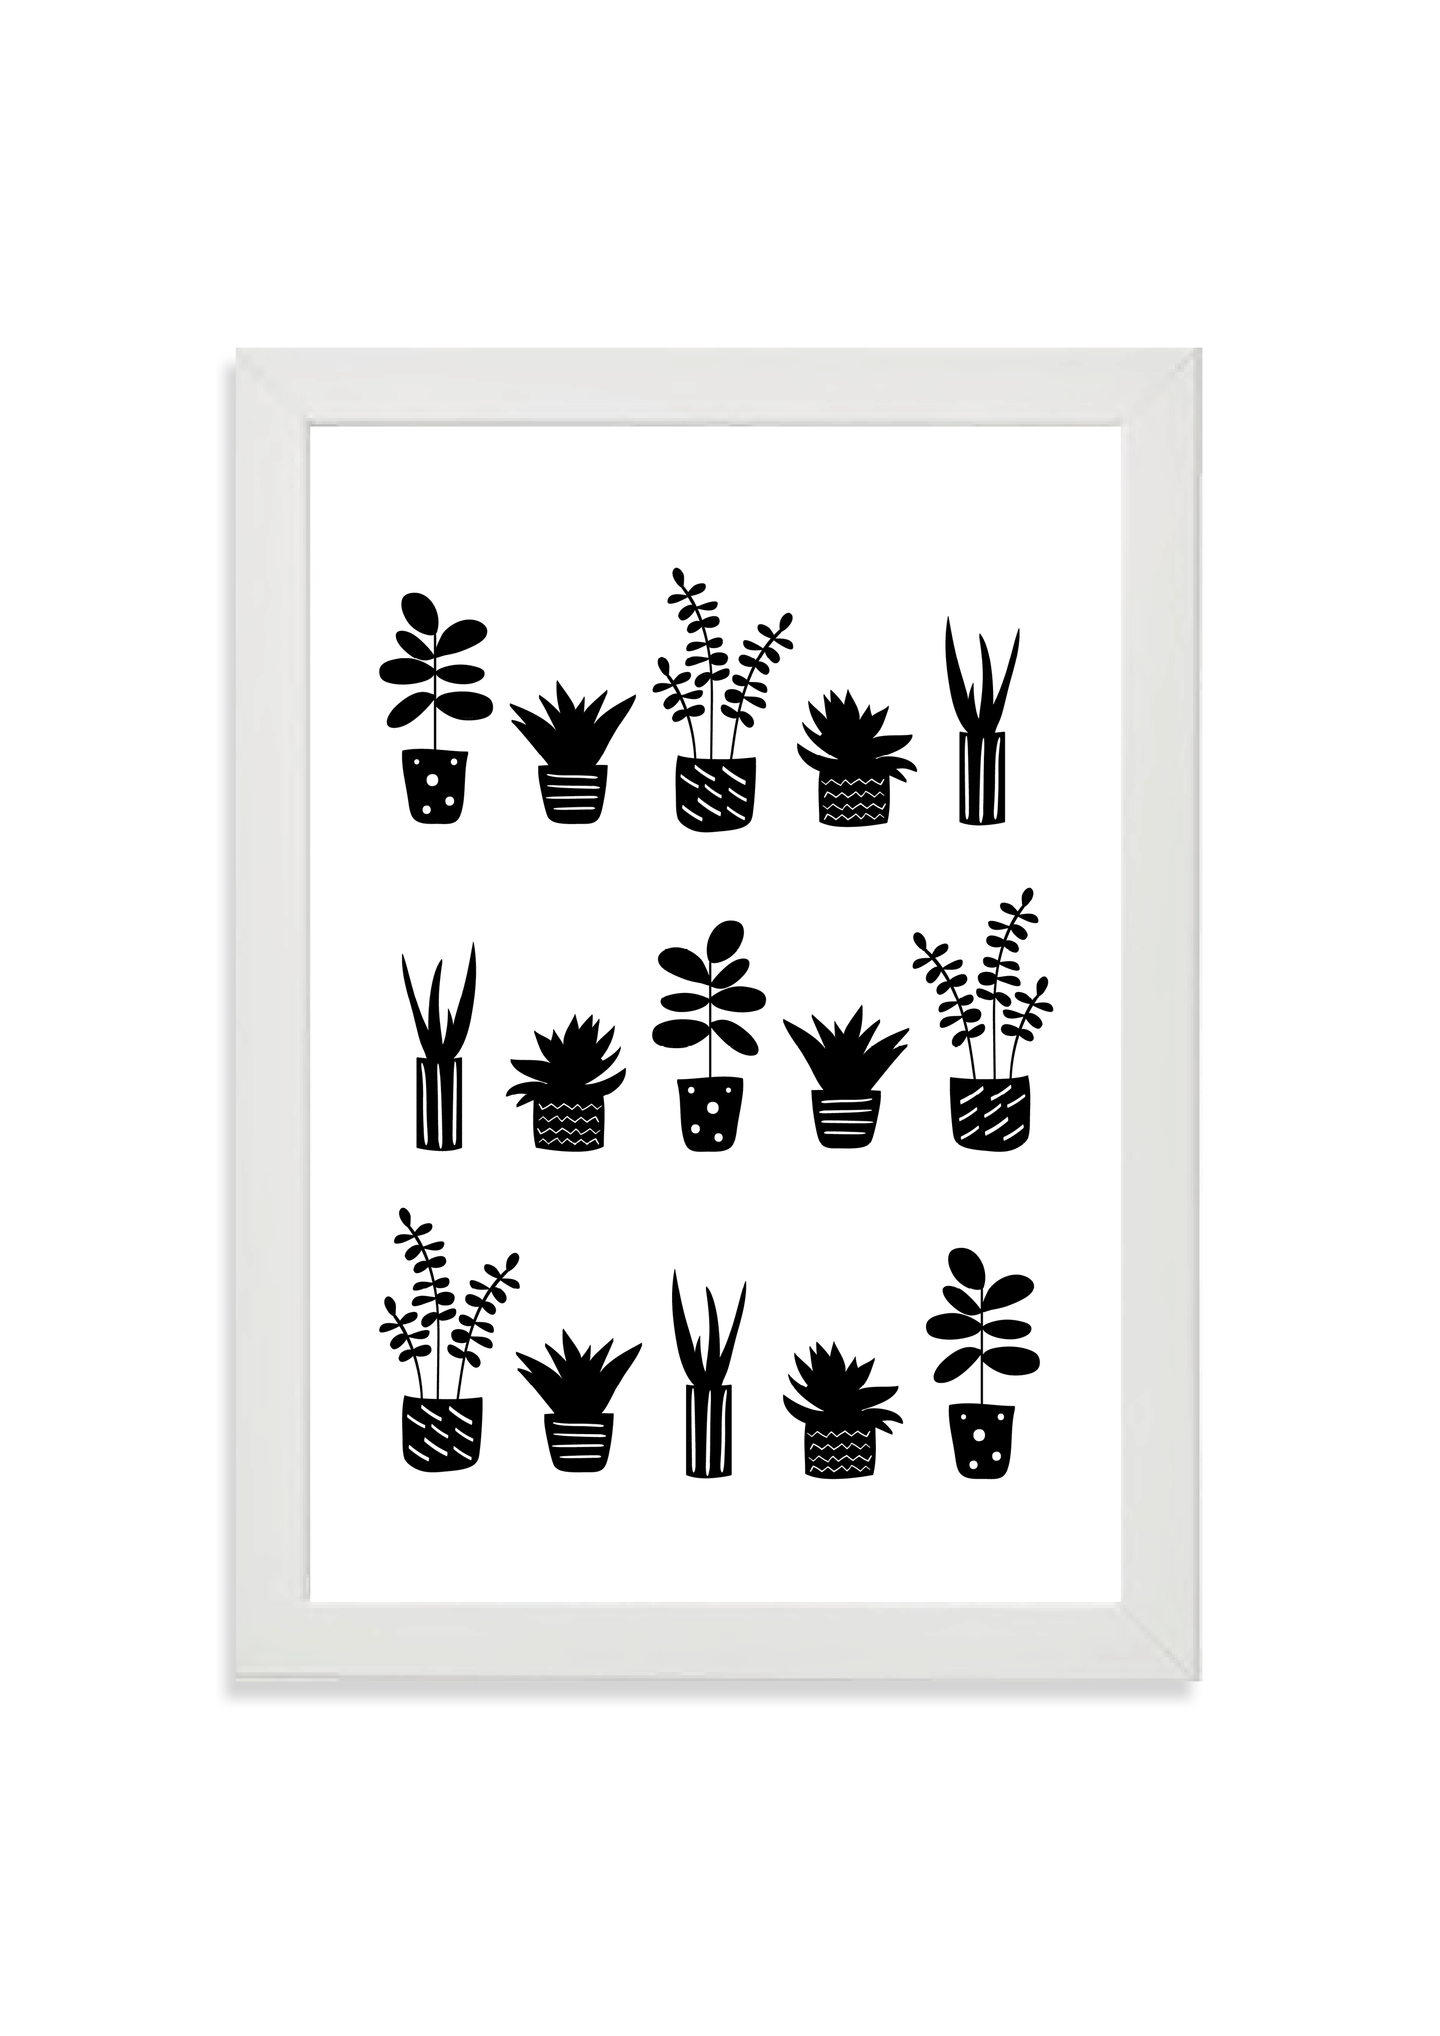 Plants (monochrome)